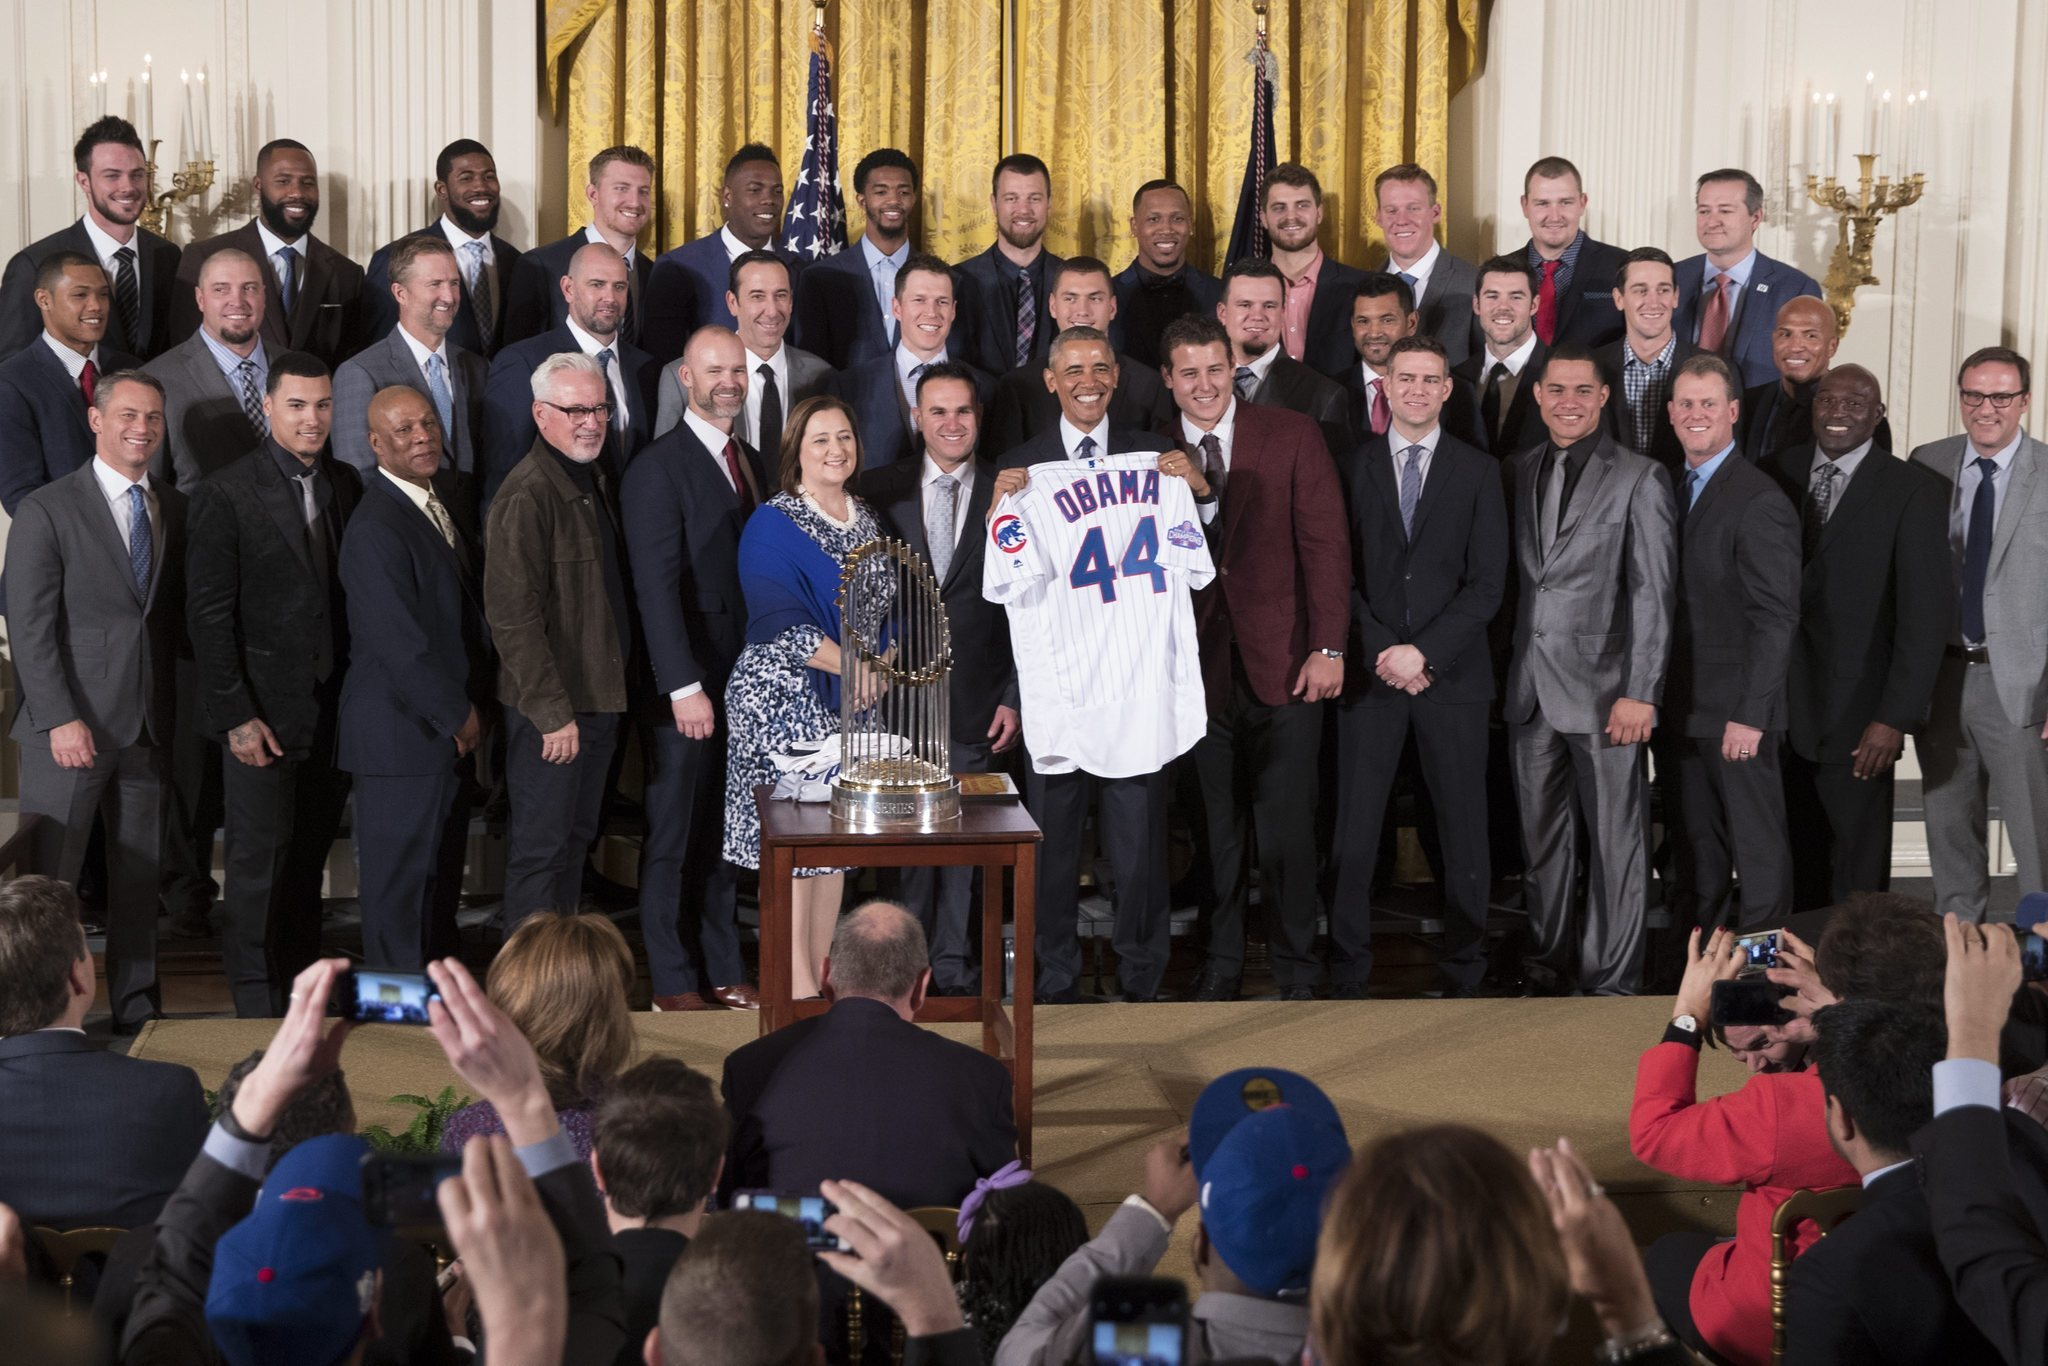 Ct-cubs-white-house-visit-20170116